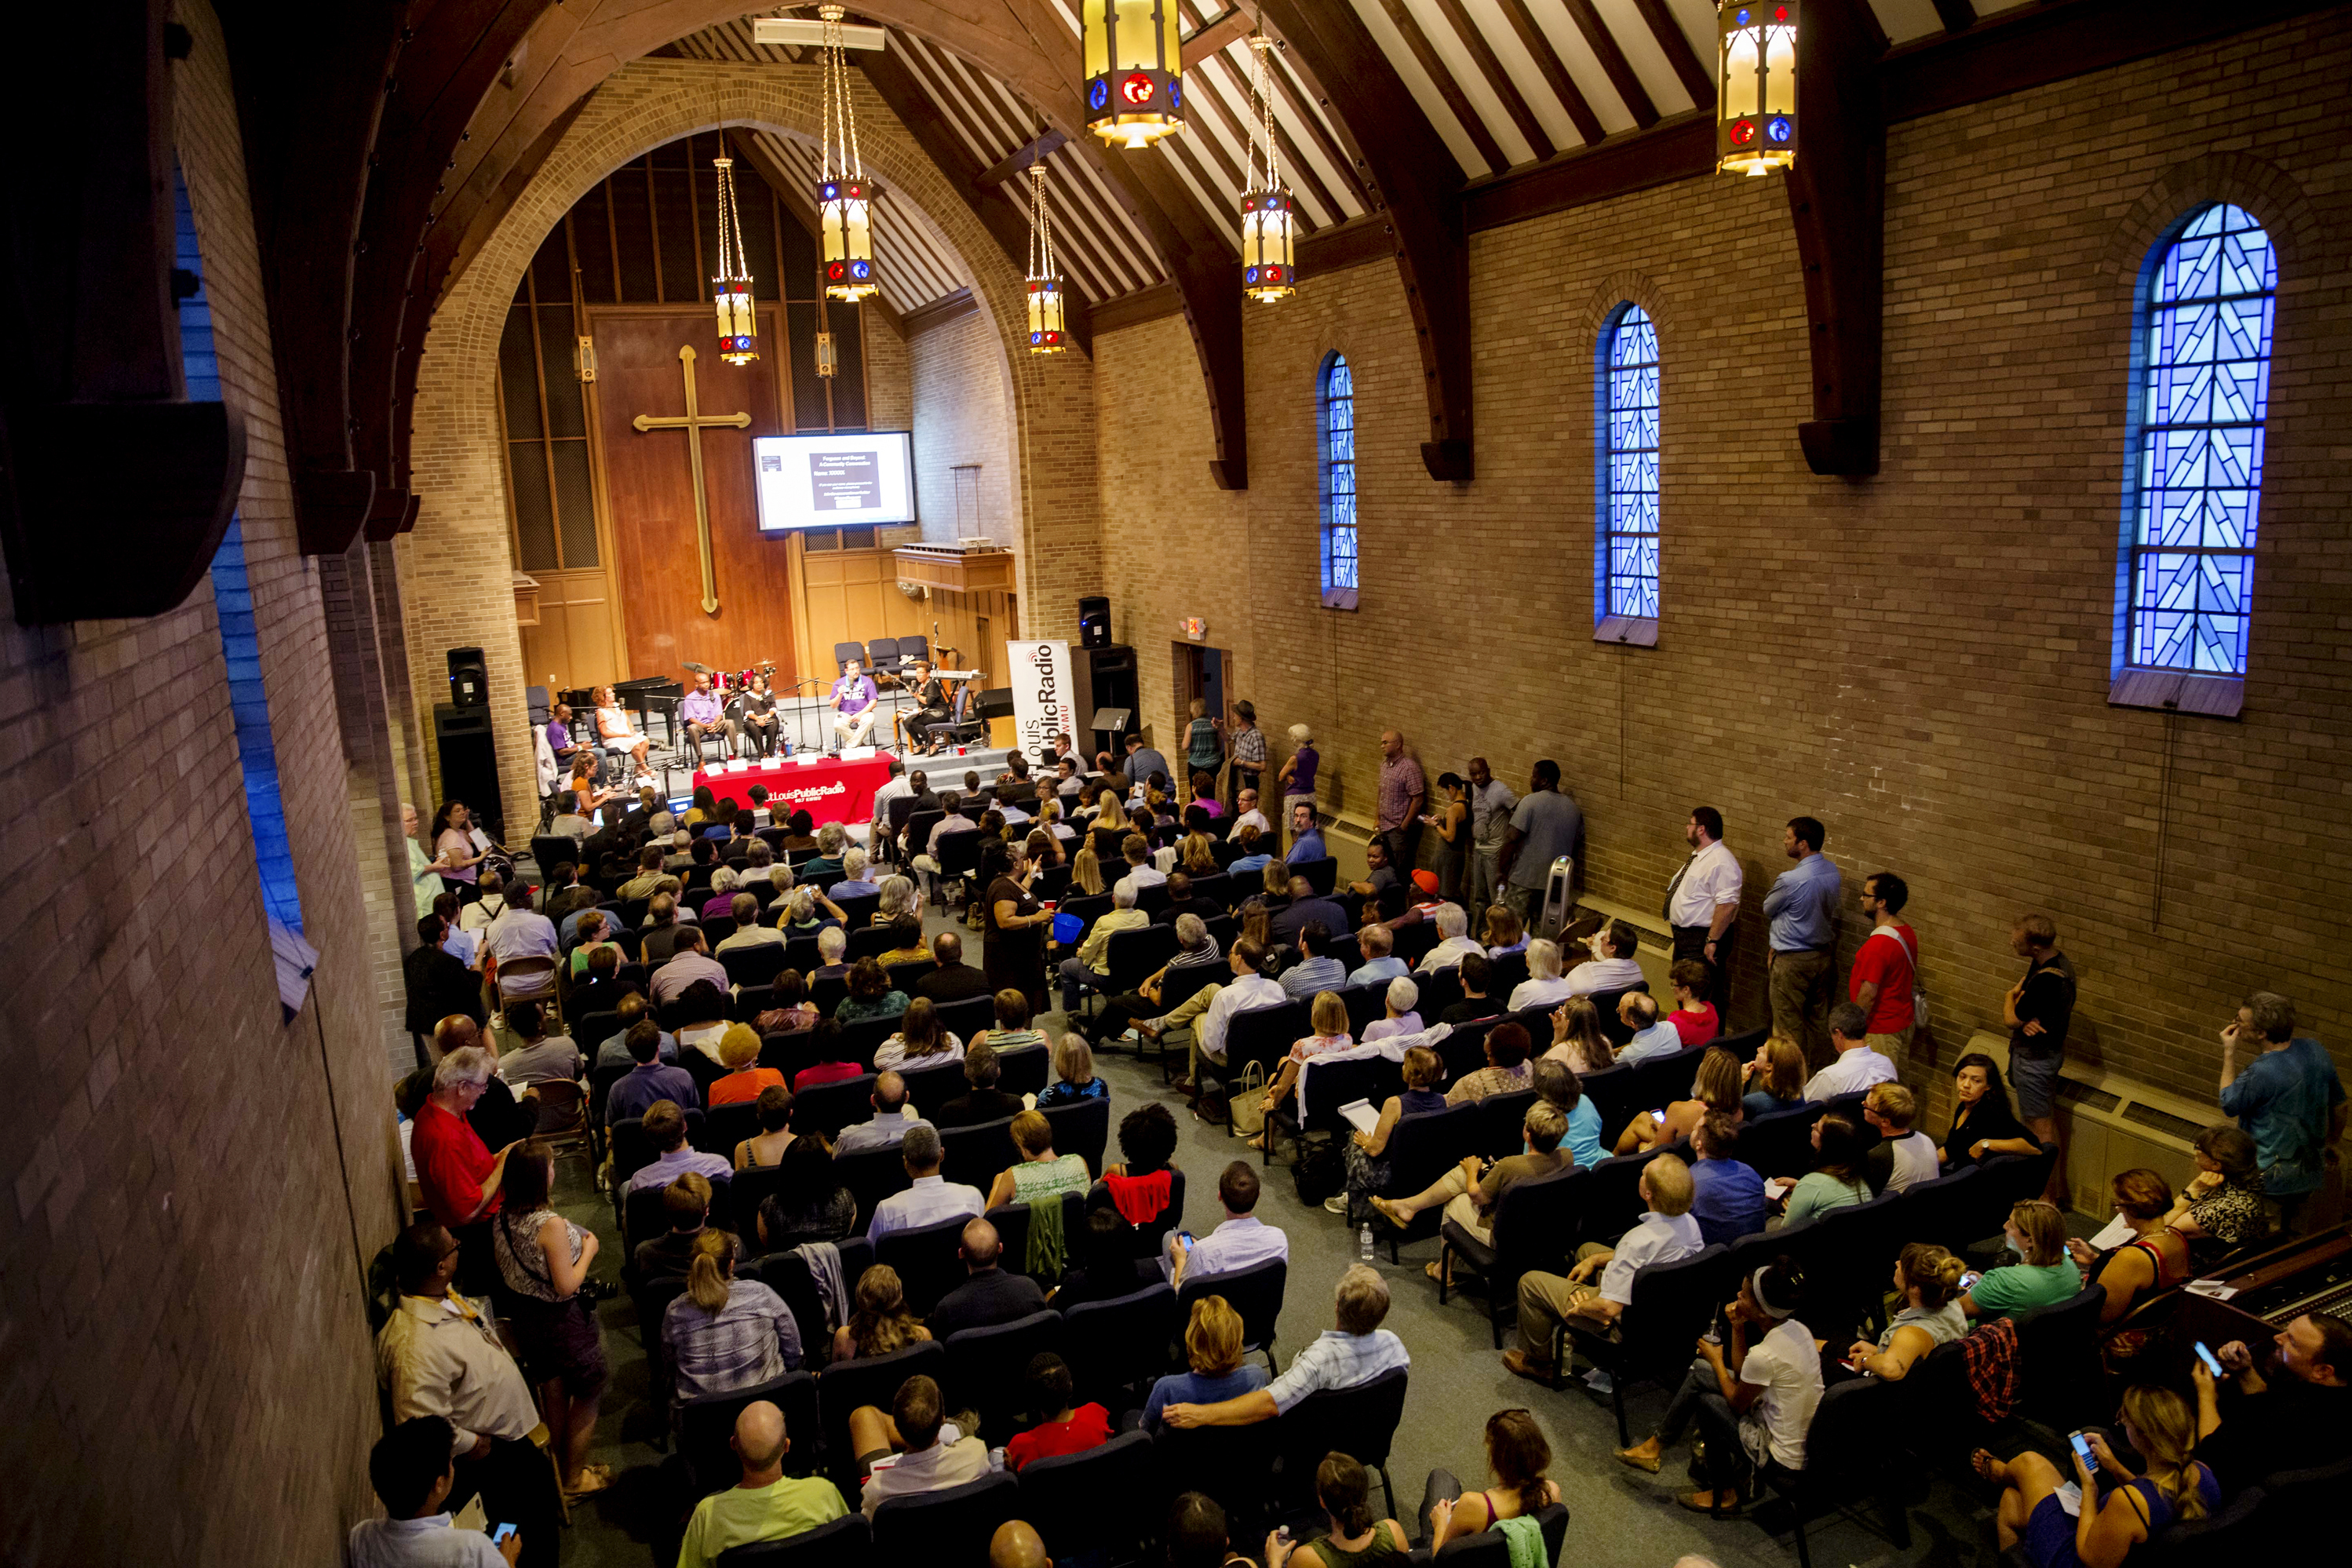 The conversation drew about 200 people to the Wellspring Church. Over the course of two hours, many members of the audience shared similar reactions to problems in Ferguson.